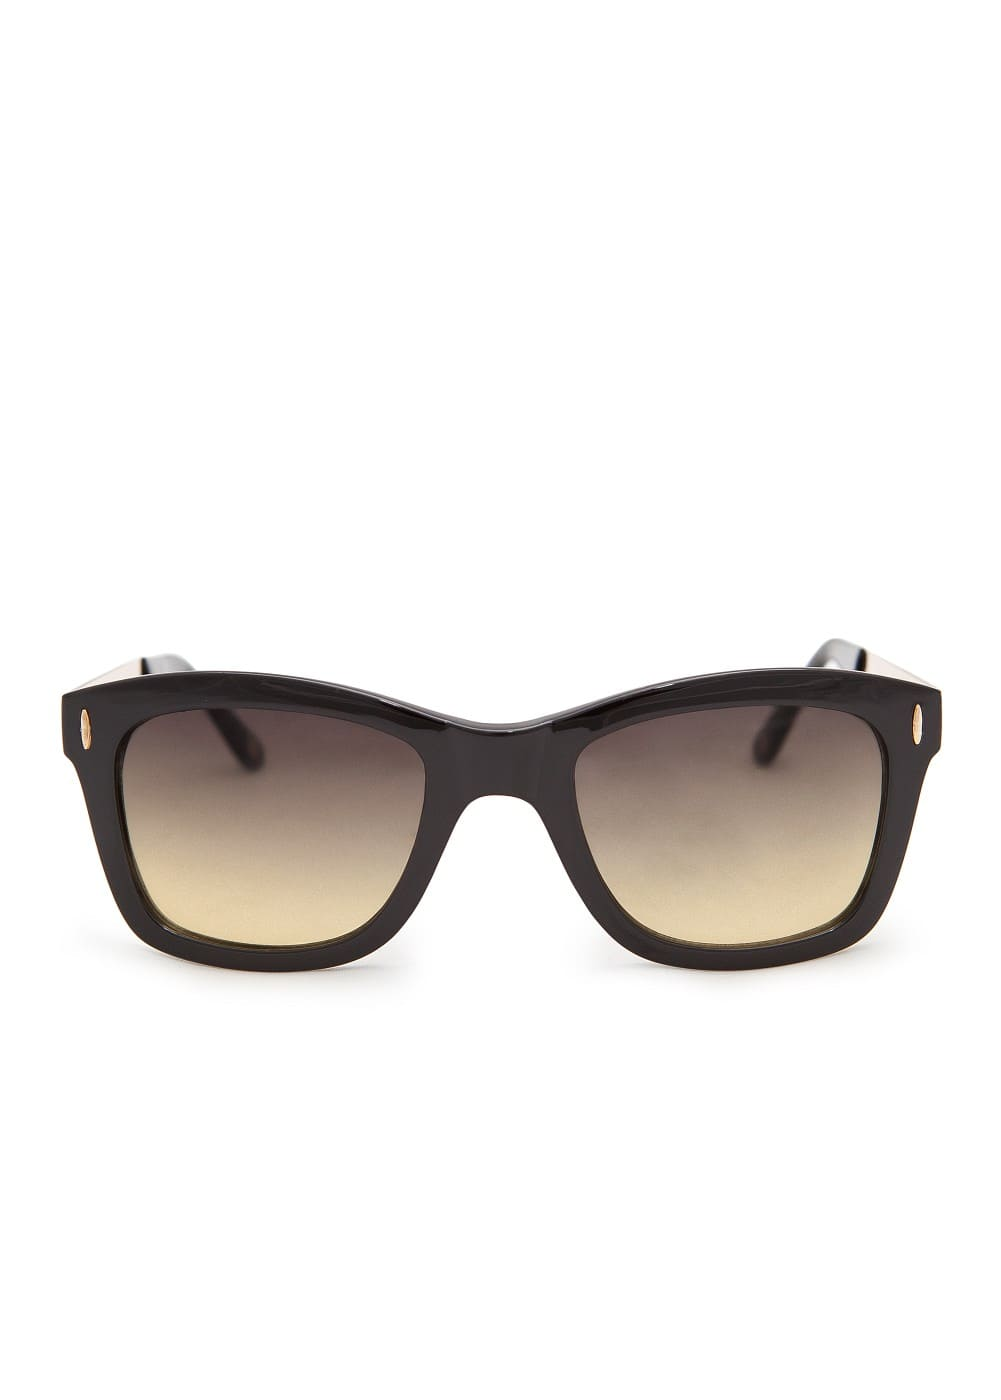 Metallic arm sunglasses